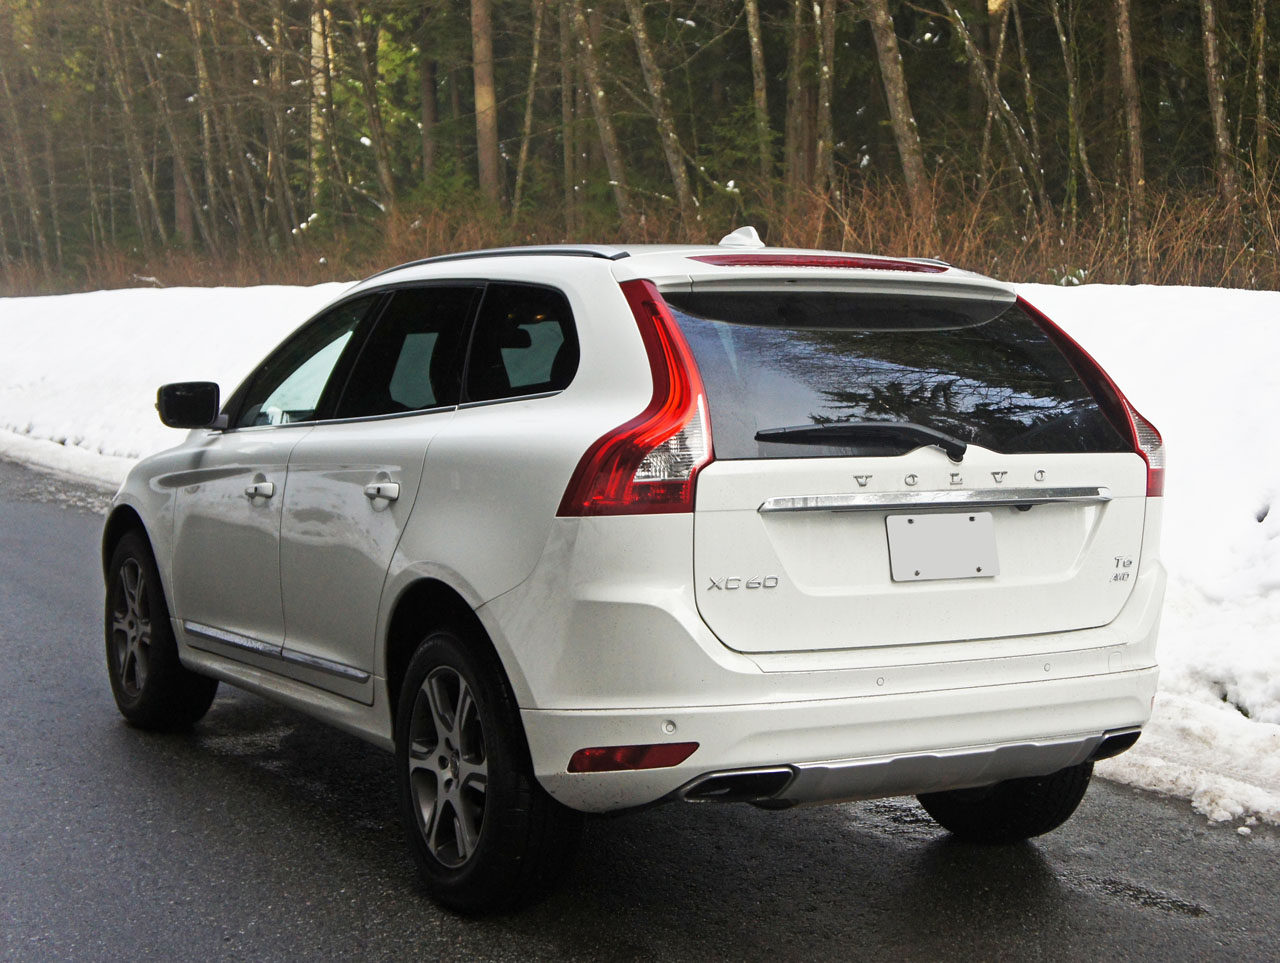 2015 volvo xc60 t6 awd road test review carcostcanada. Black Bedroom Furniture Sets. Home Design Ideas